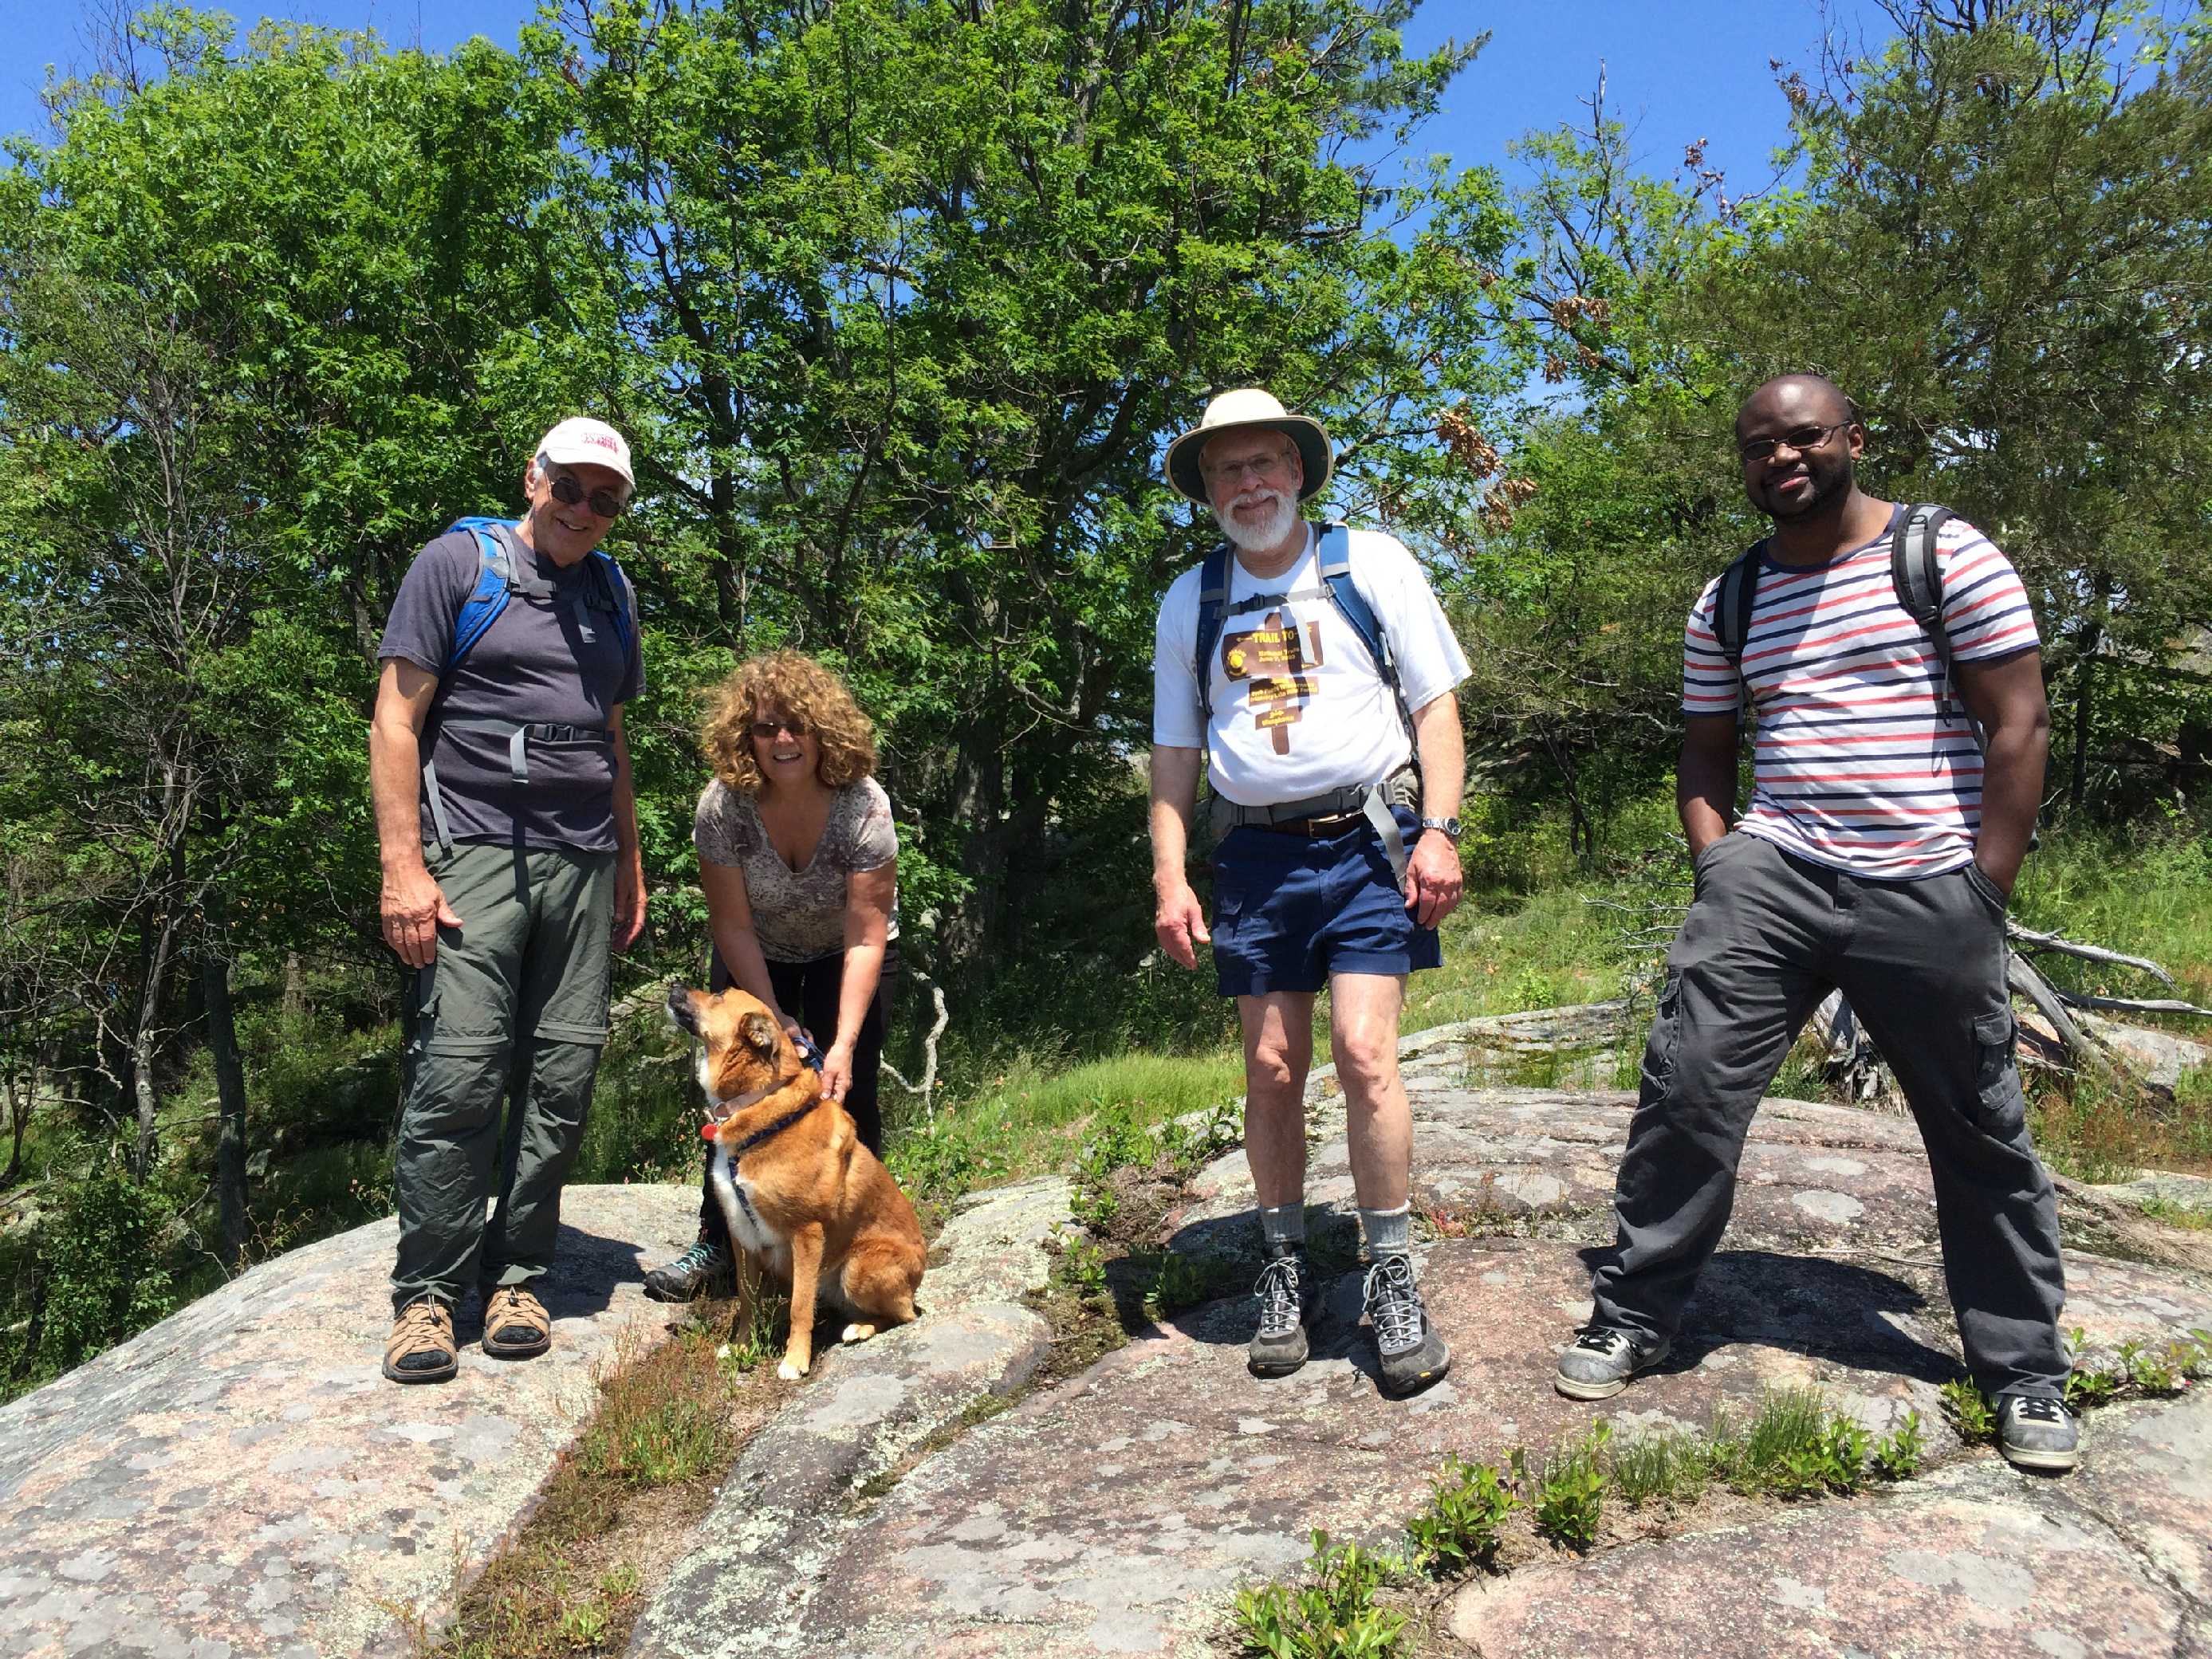 Dog And Family Hike At Wellesley Island State Park Jun 10 2017 We Had A Perfect Sunny Day With Mild Temperatures The Trails Continue To